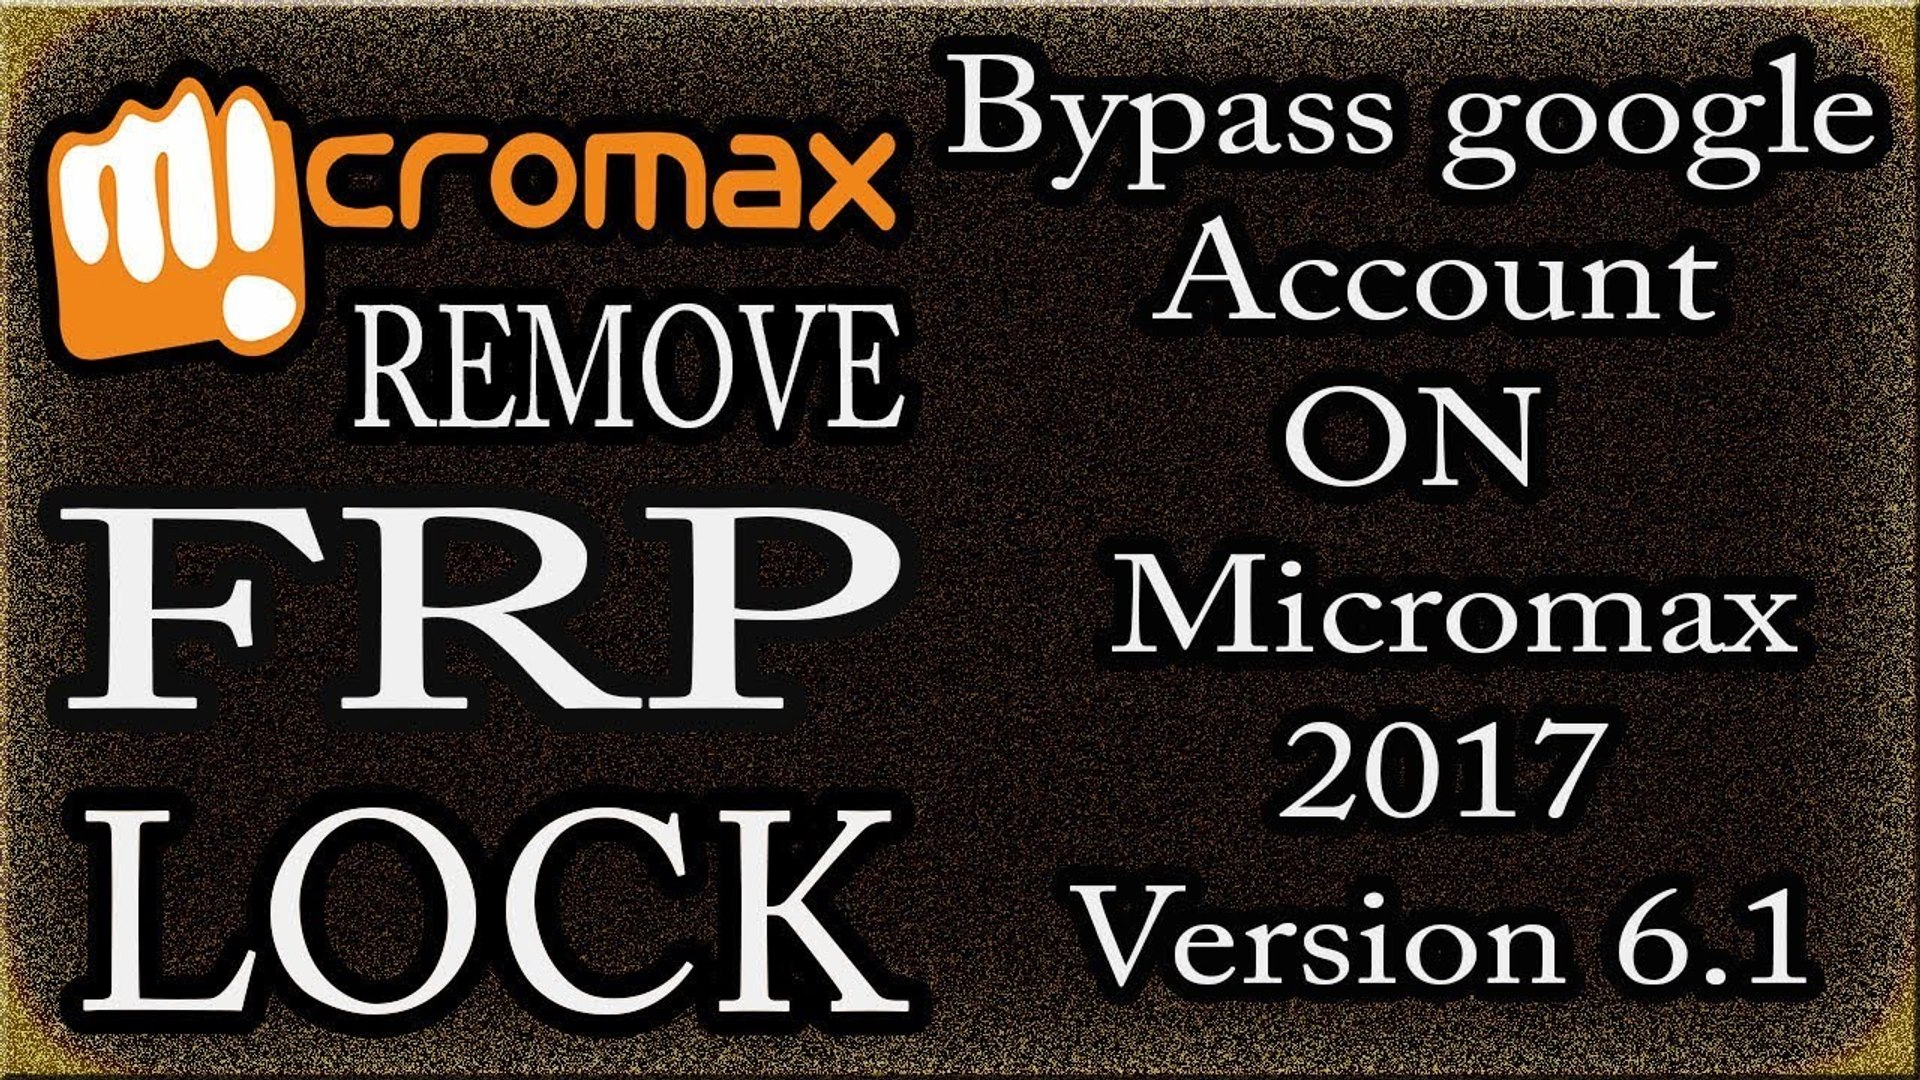 A New Way How To Remove FRP Lock on Micromax Mobile - Bypass google Account  verification 2017